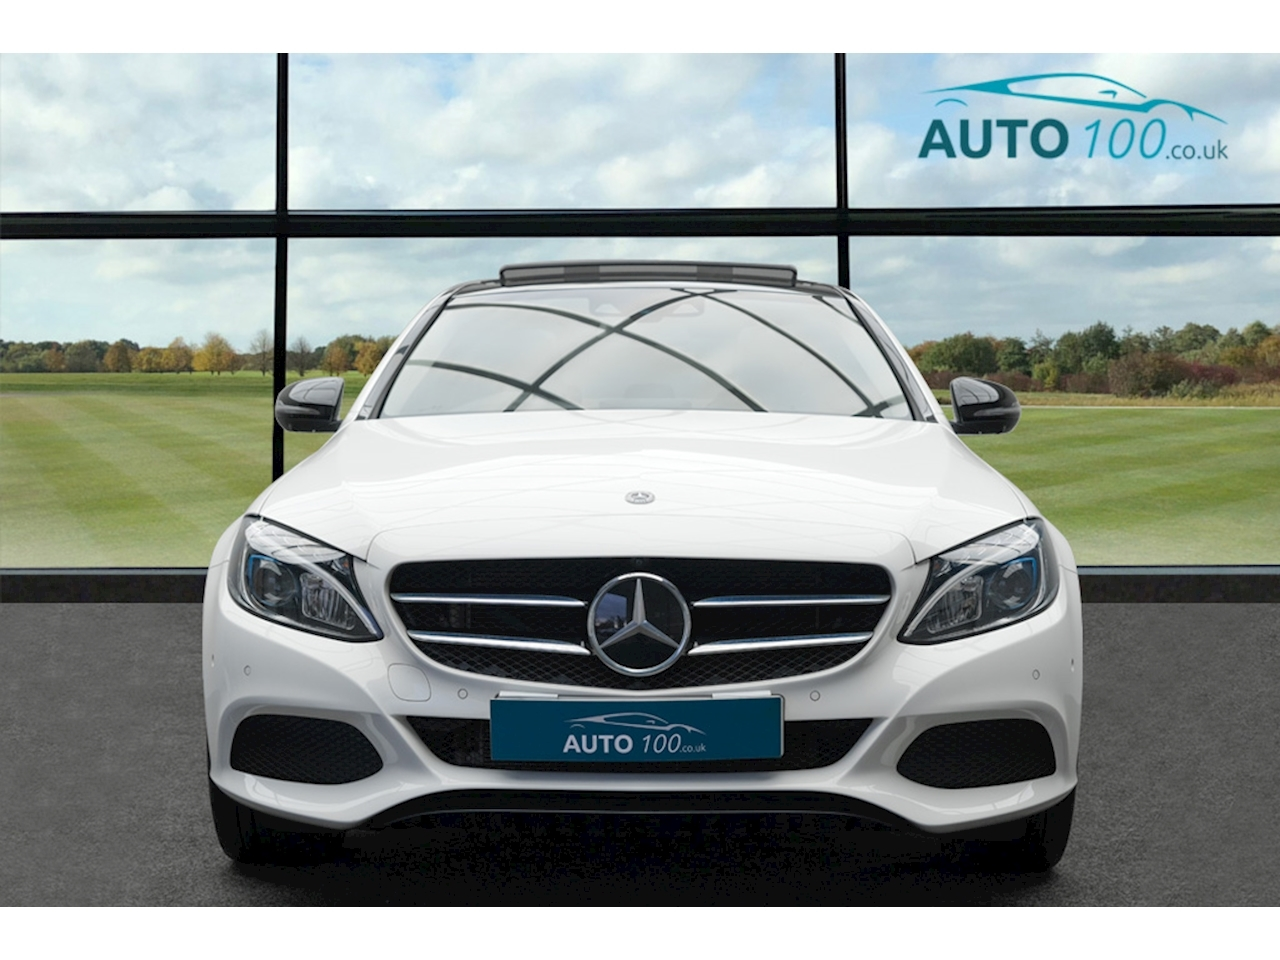 Mercedes-Benz 2.0 C350e 6.4kWh Sport Saloon 4dr Petrol Plug-in Hybrid G-Tronic+ (s/s) (293 ps)